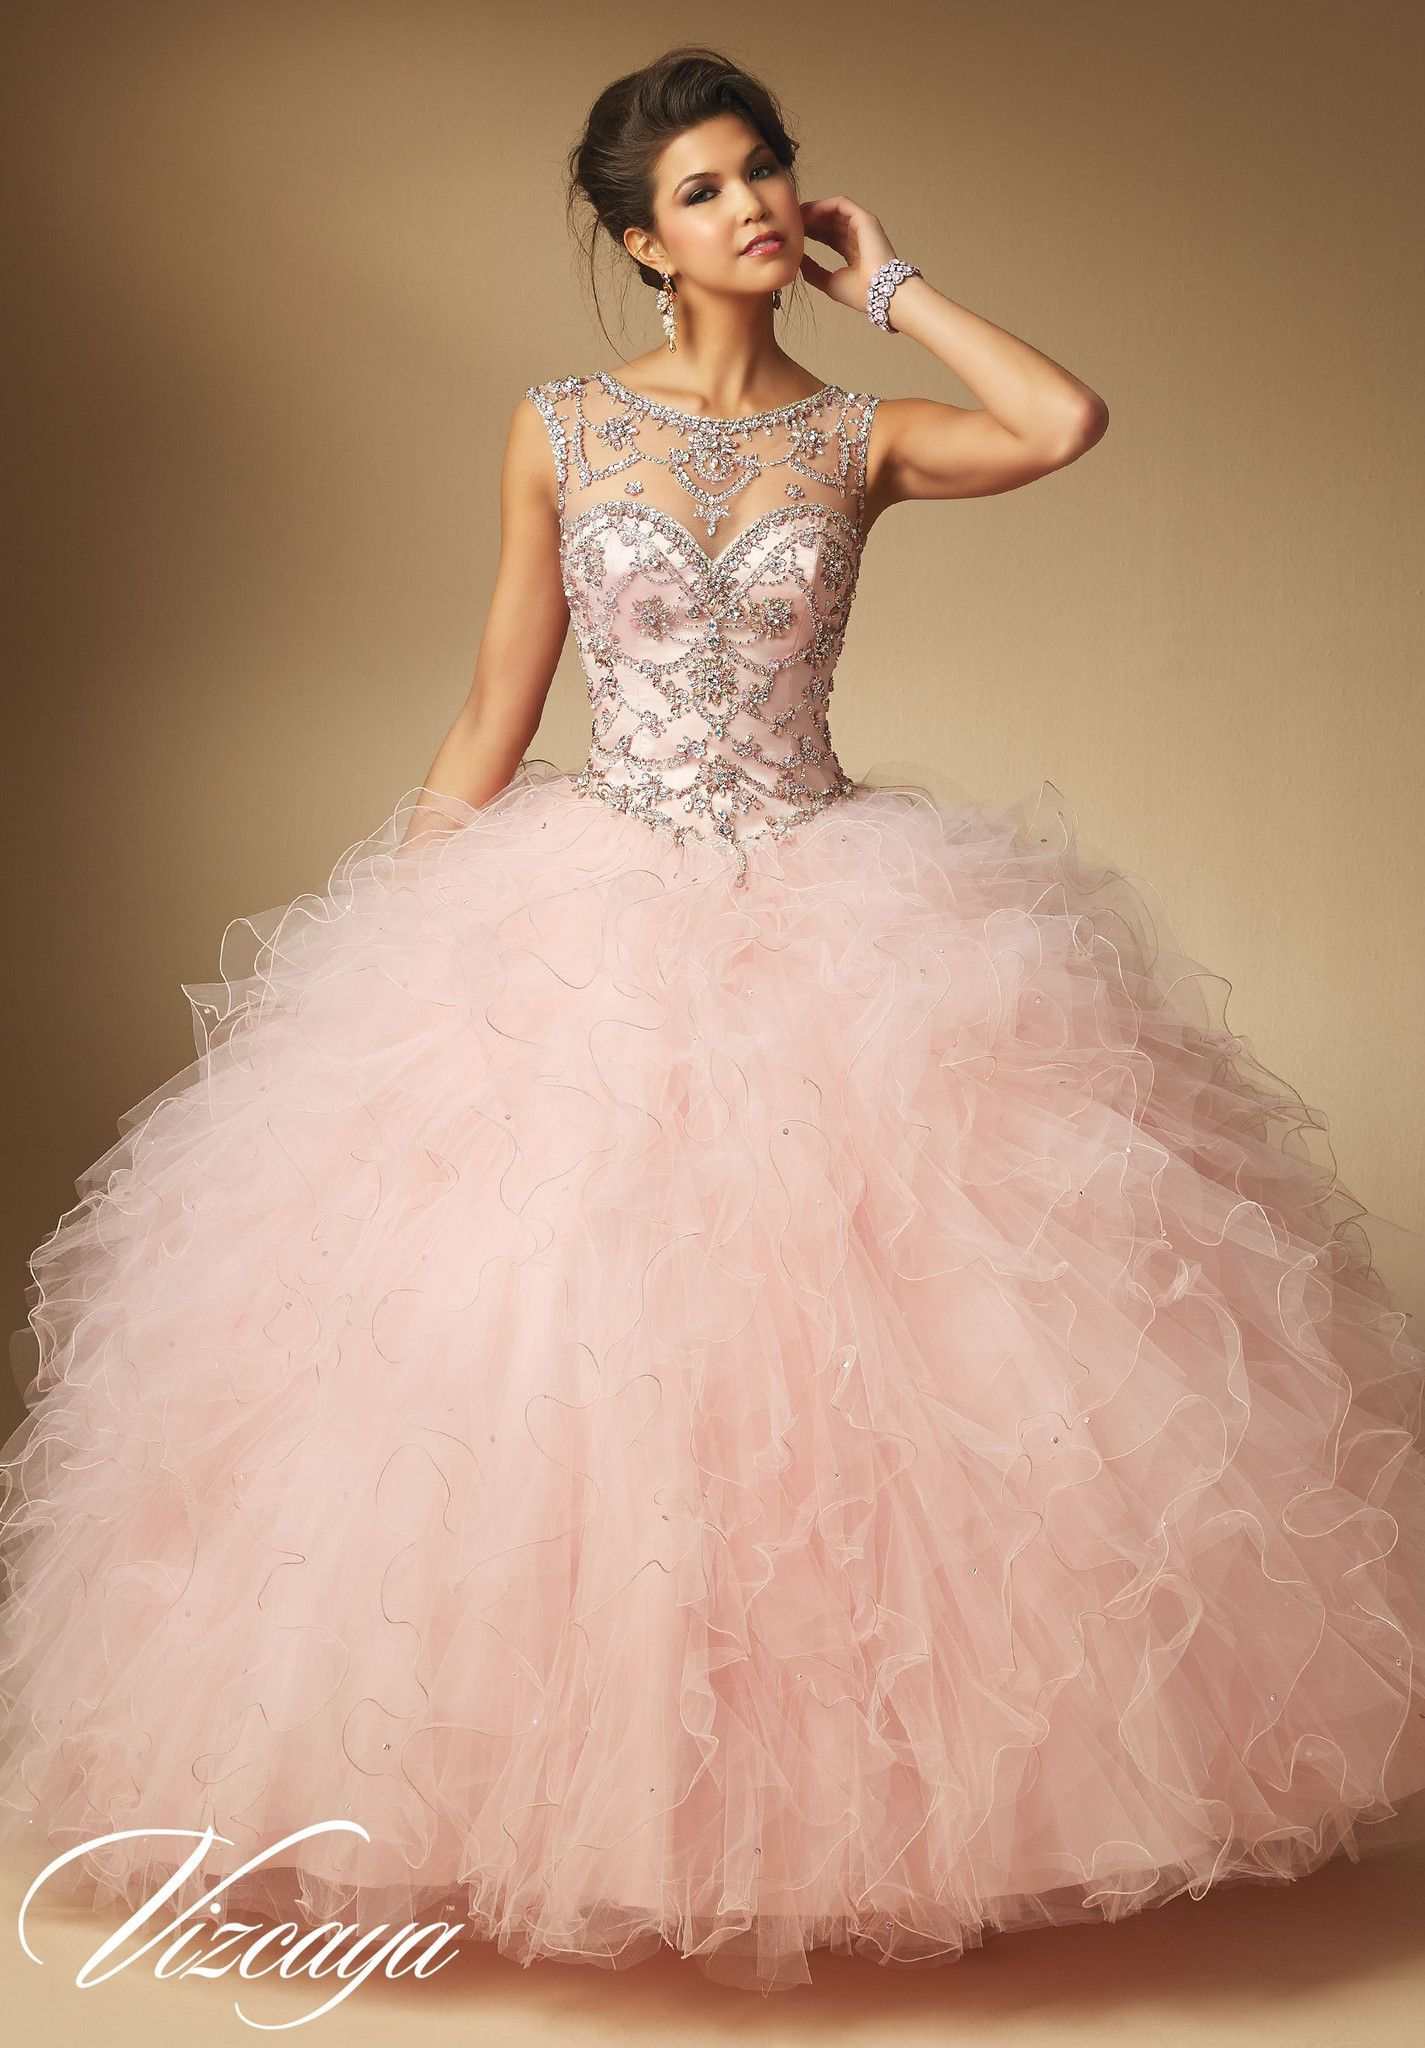 Mori Lee Quinceanera Dress 89041 | Sweet 15, Mori lee and Ball gowns